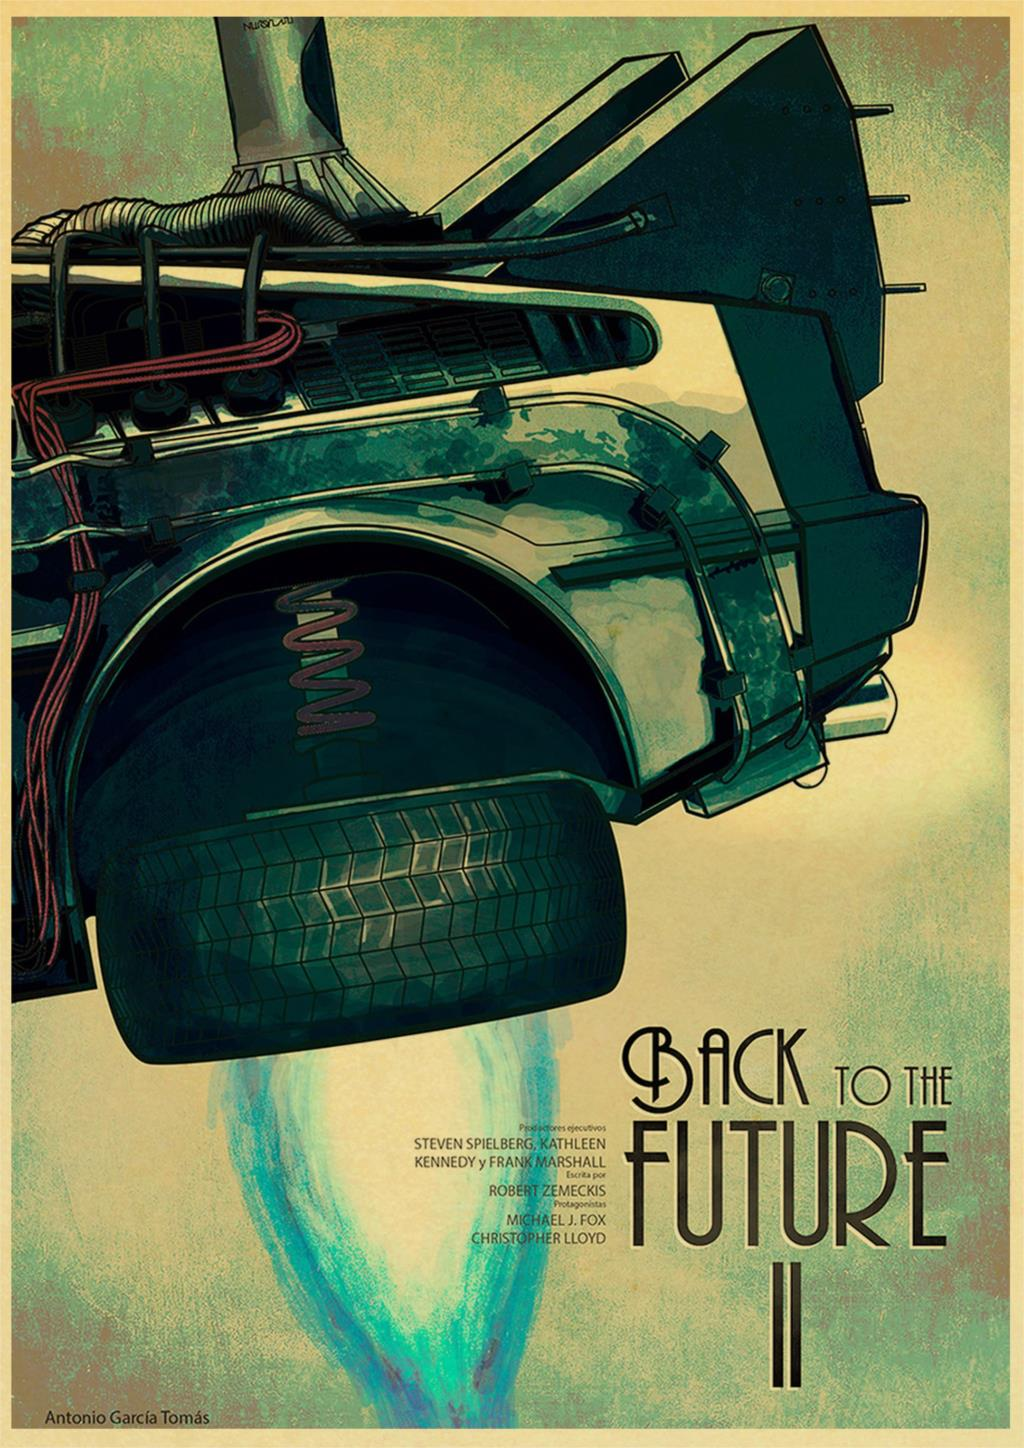 HTB1tZRKOXzqK1RjSZFoq6zfcXXar Classic Movie Back To The Future Vintage Posters For Home/Bar/Living Decor kraft Paper high quality poster wall sticker